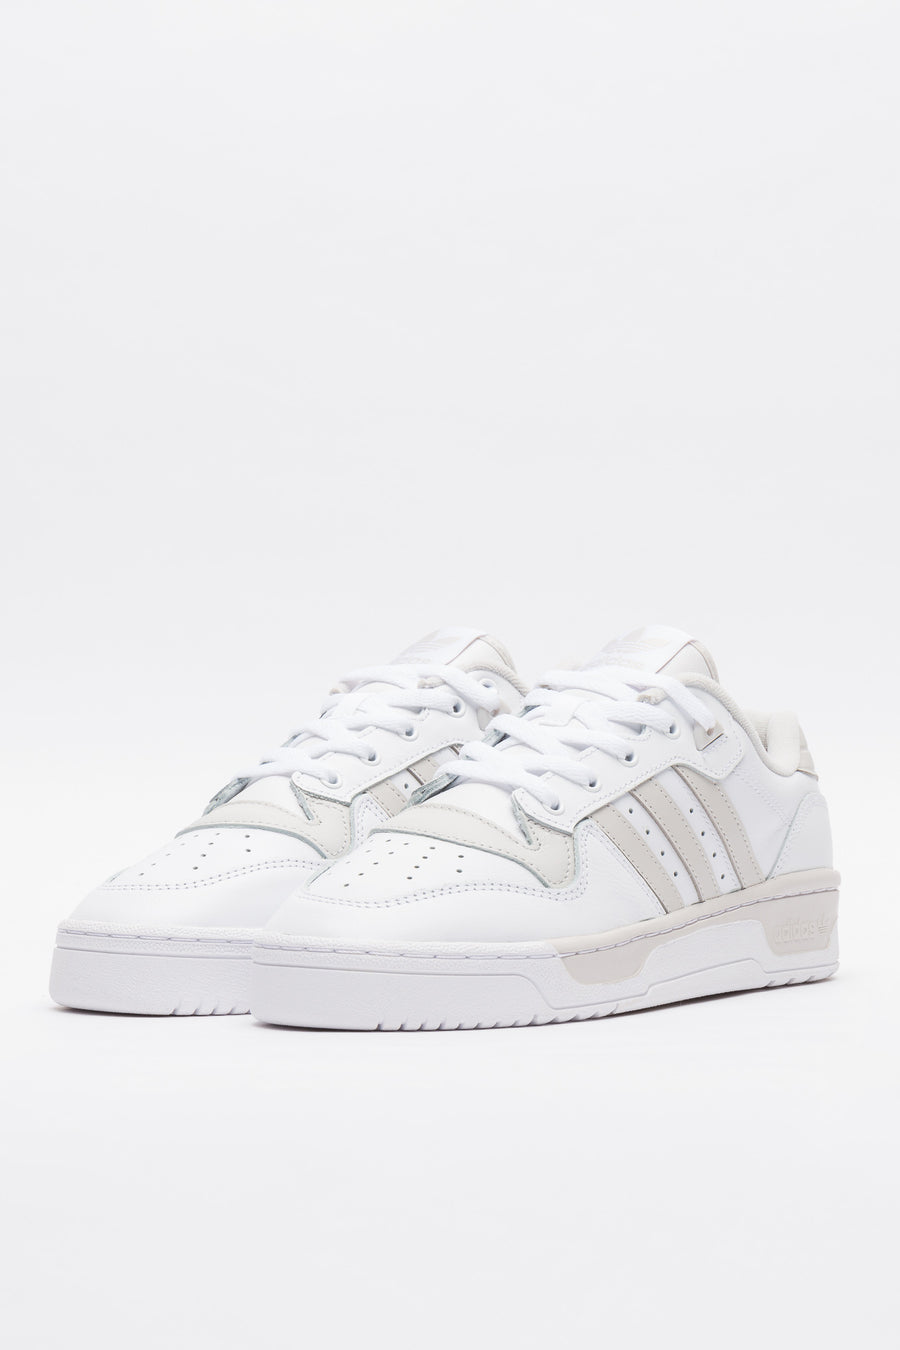 adidas Rivalry Low in White - Notre